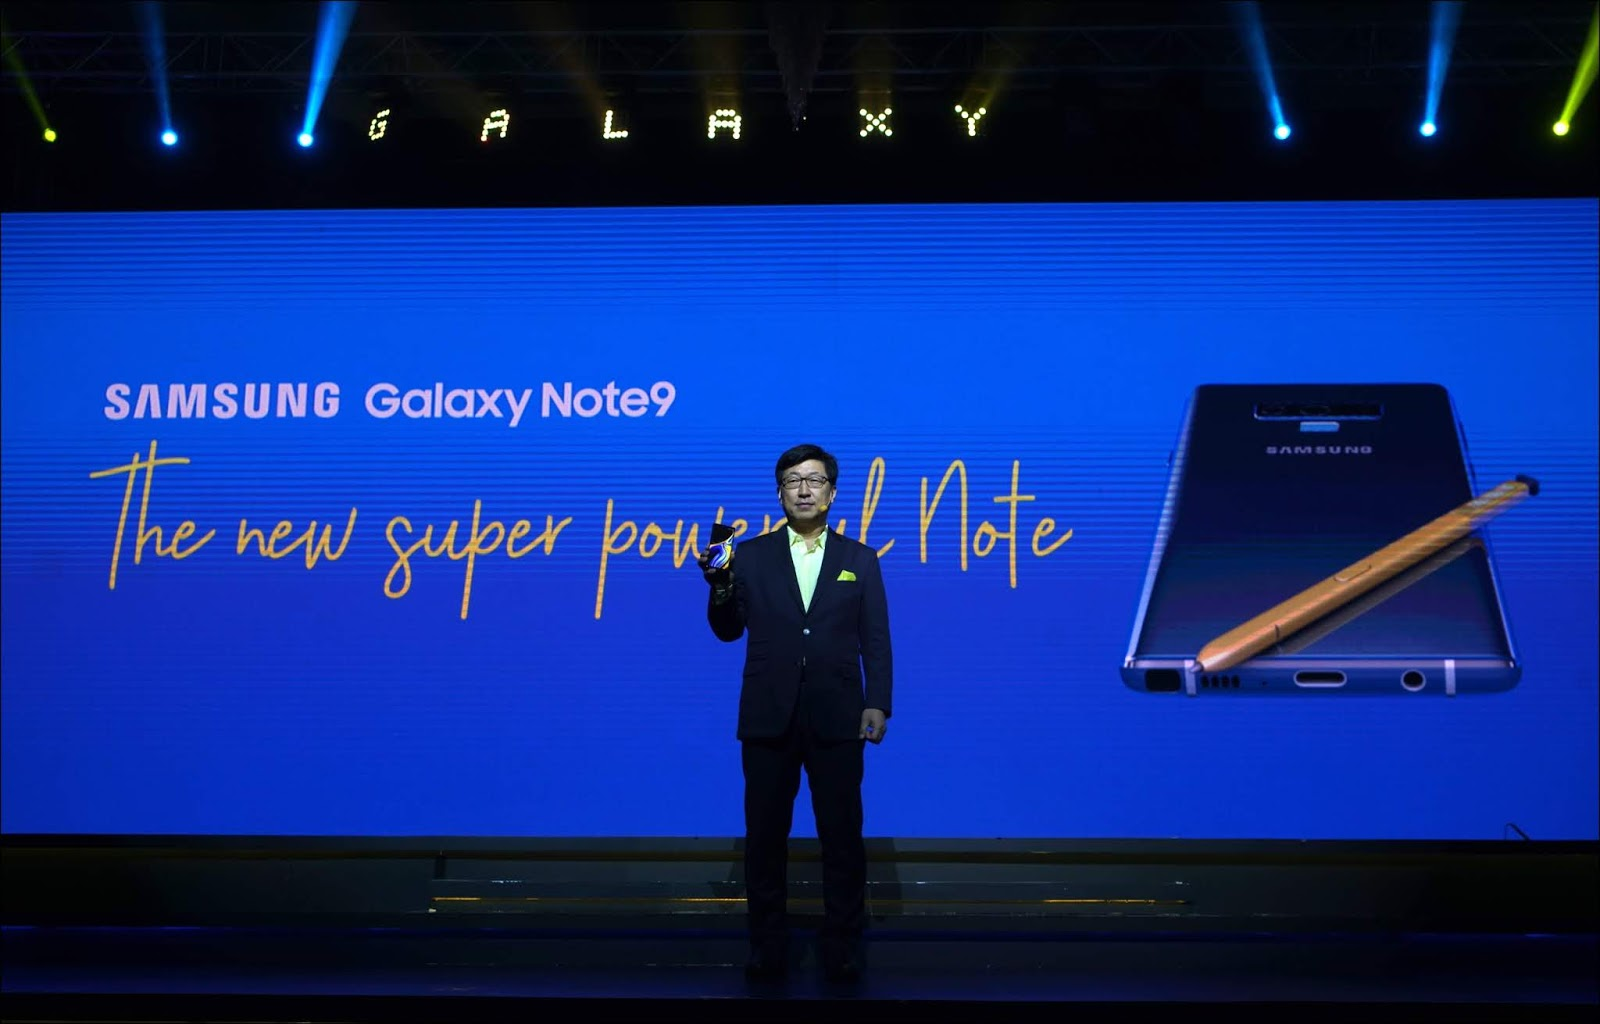 Samsung Luncurkan Galaxy Note9 Super Powerful Note